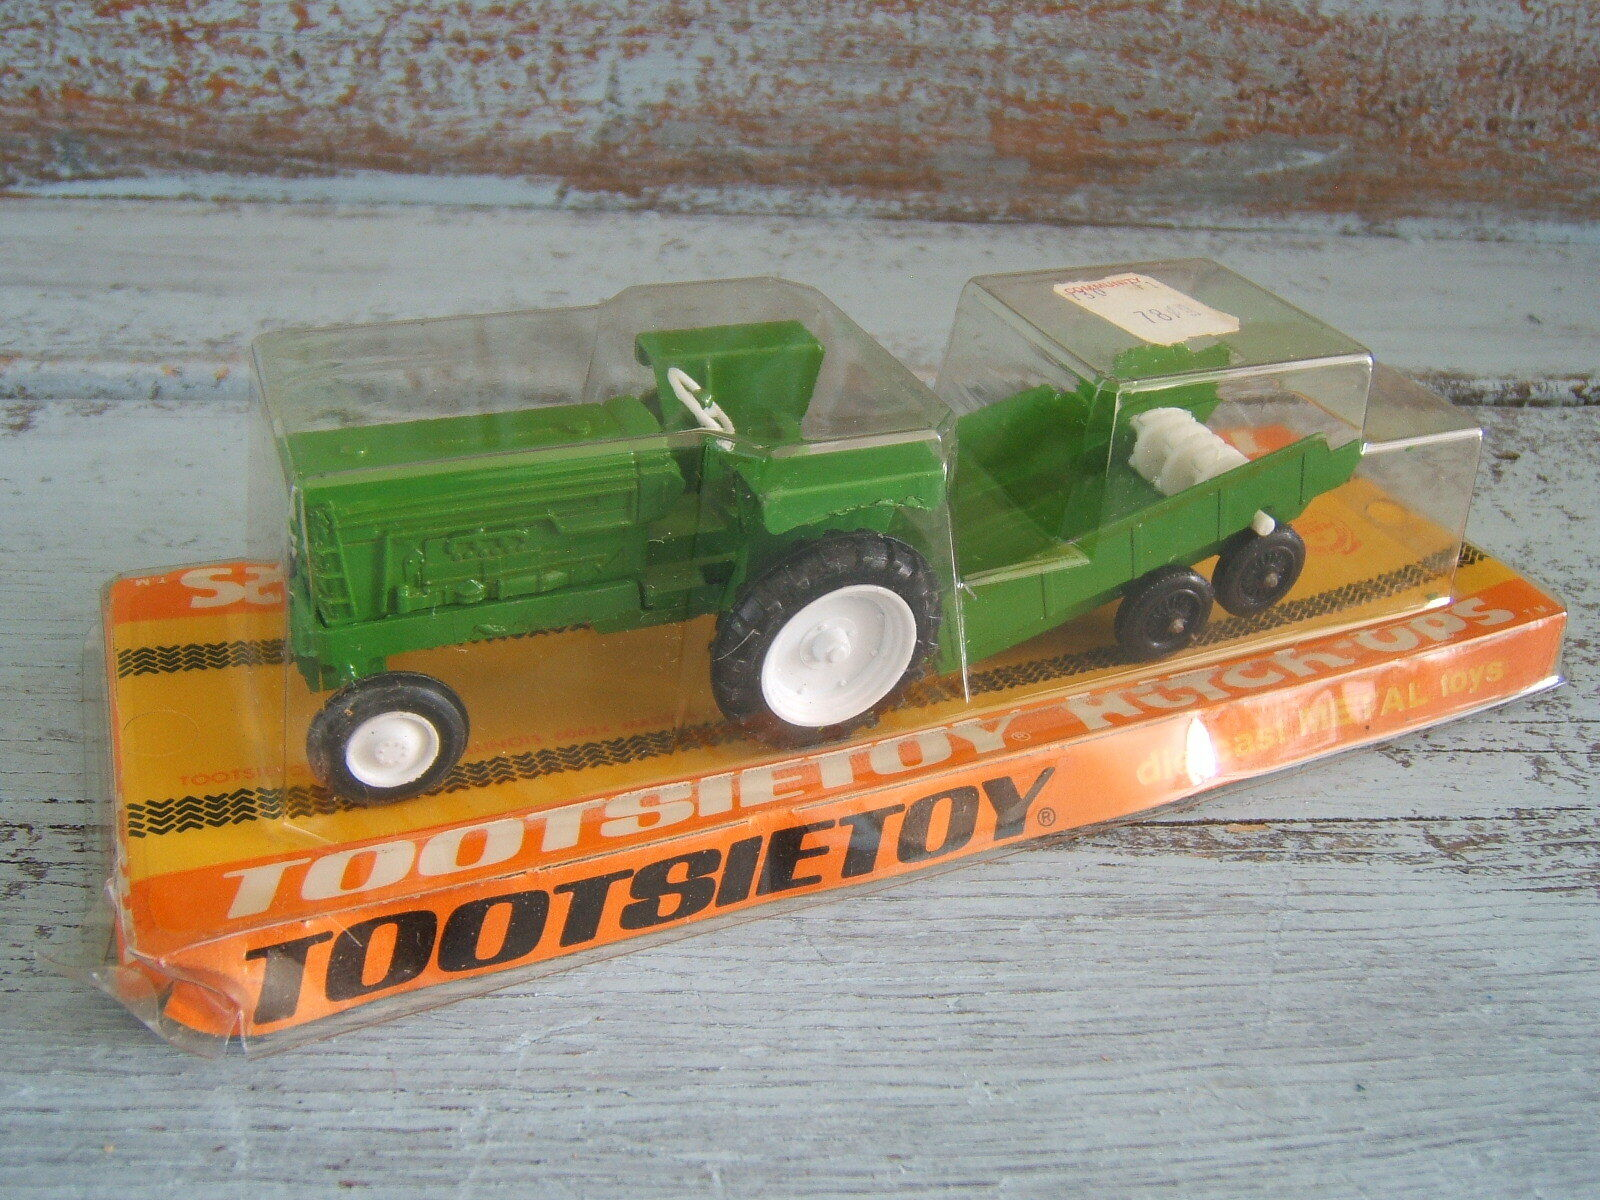 Vintage 1969 Tootsietoy Hitch Ups Green Farm Tractor & Spreader on Sealed Card